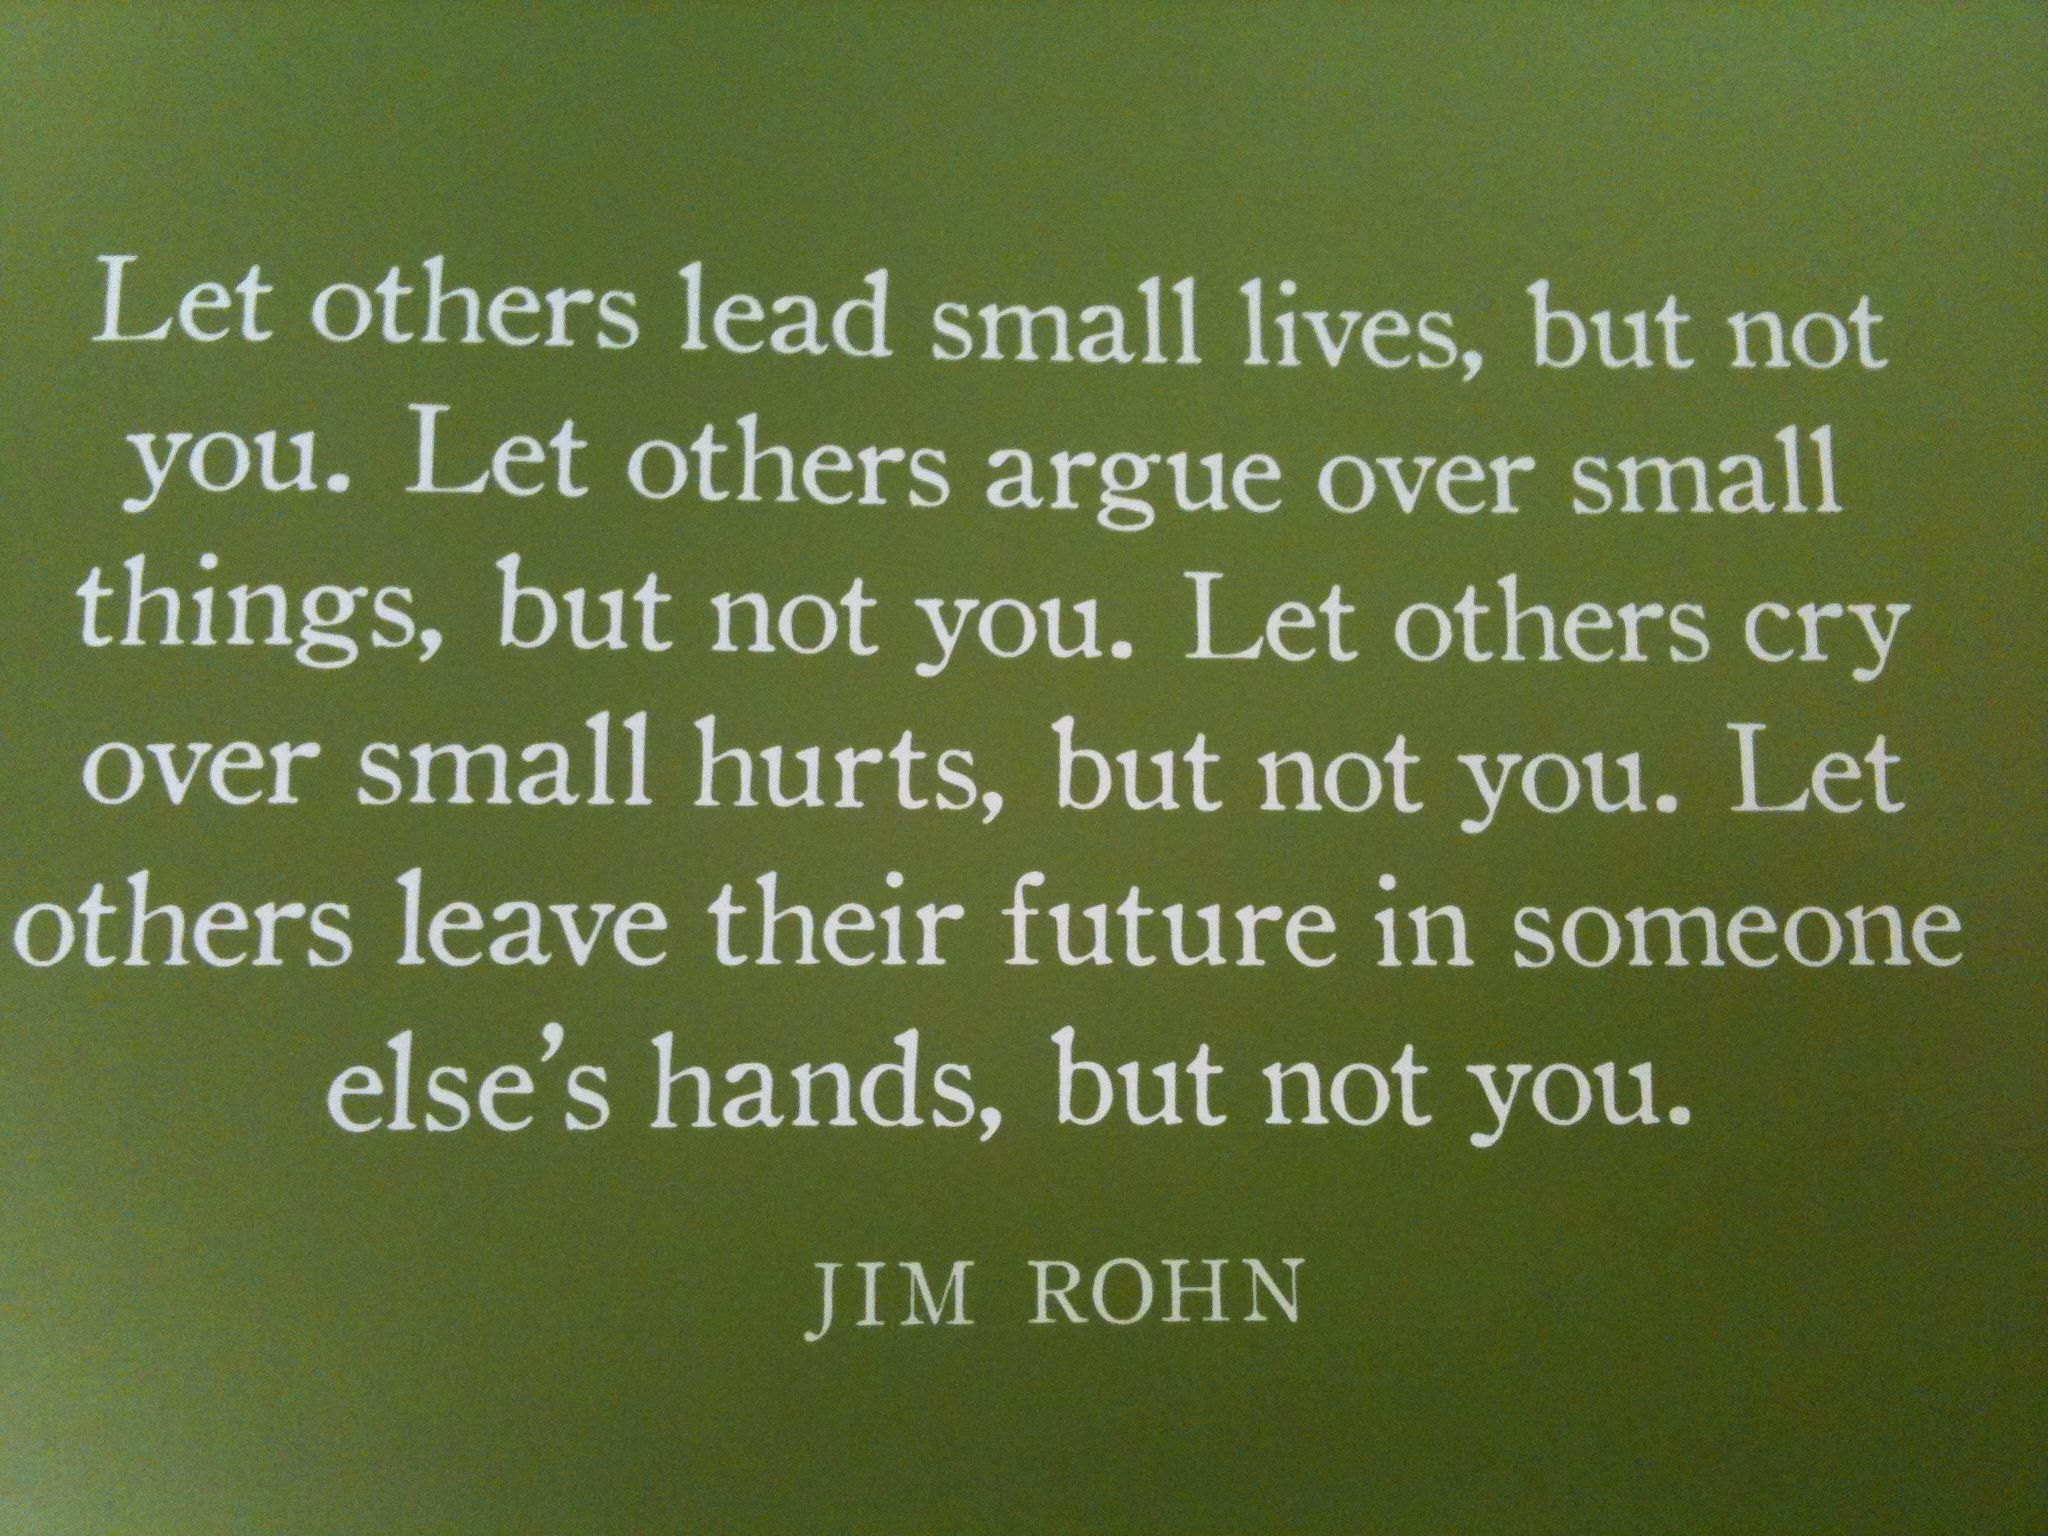 Live Futures Quotes Let Others Live Small Lives But Not Youlet Others Argue Over